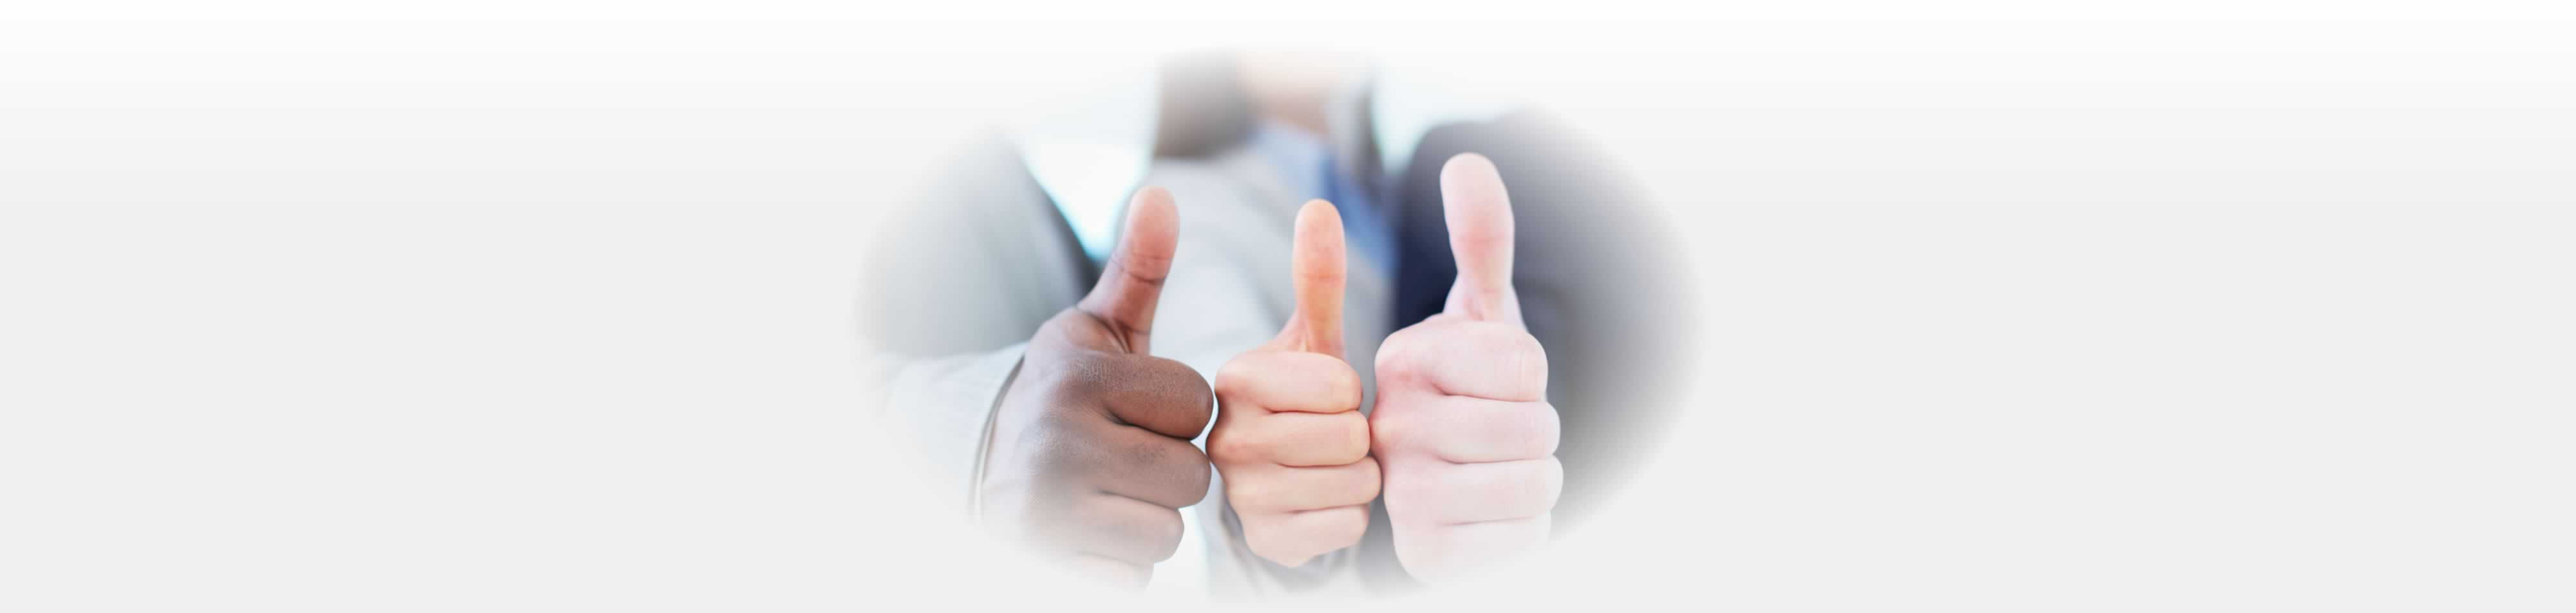 Photo of three thumbs up.